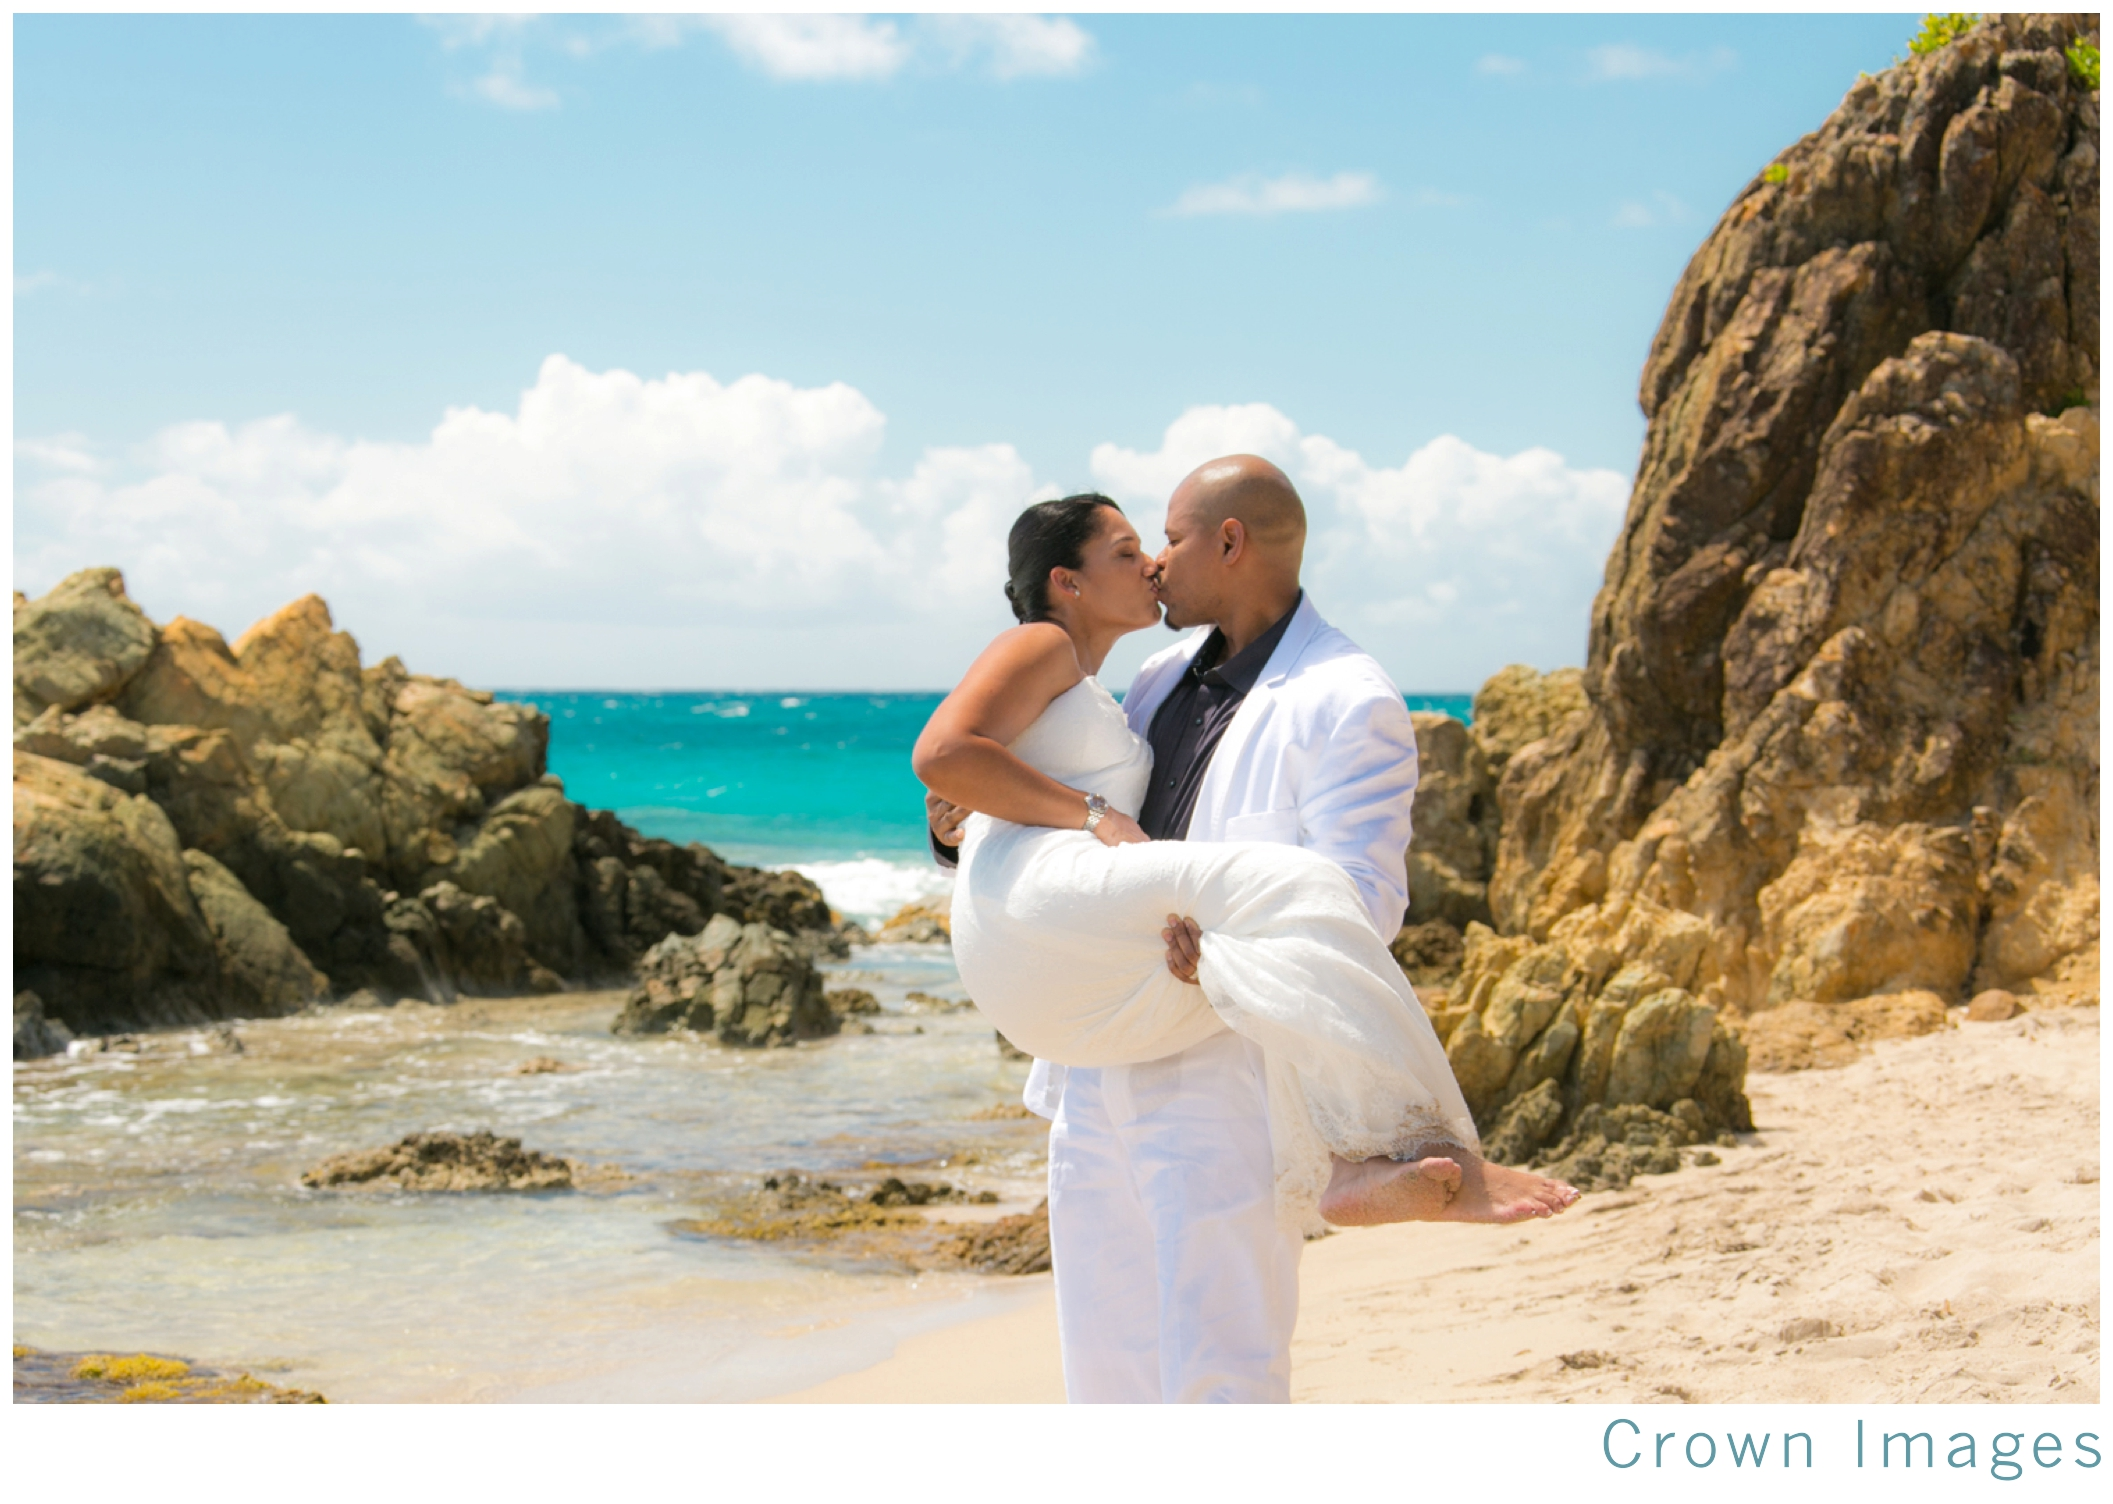 st-thomas-beach-wedding-photos_0892.jpg